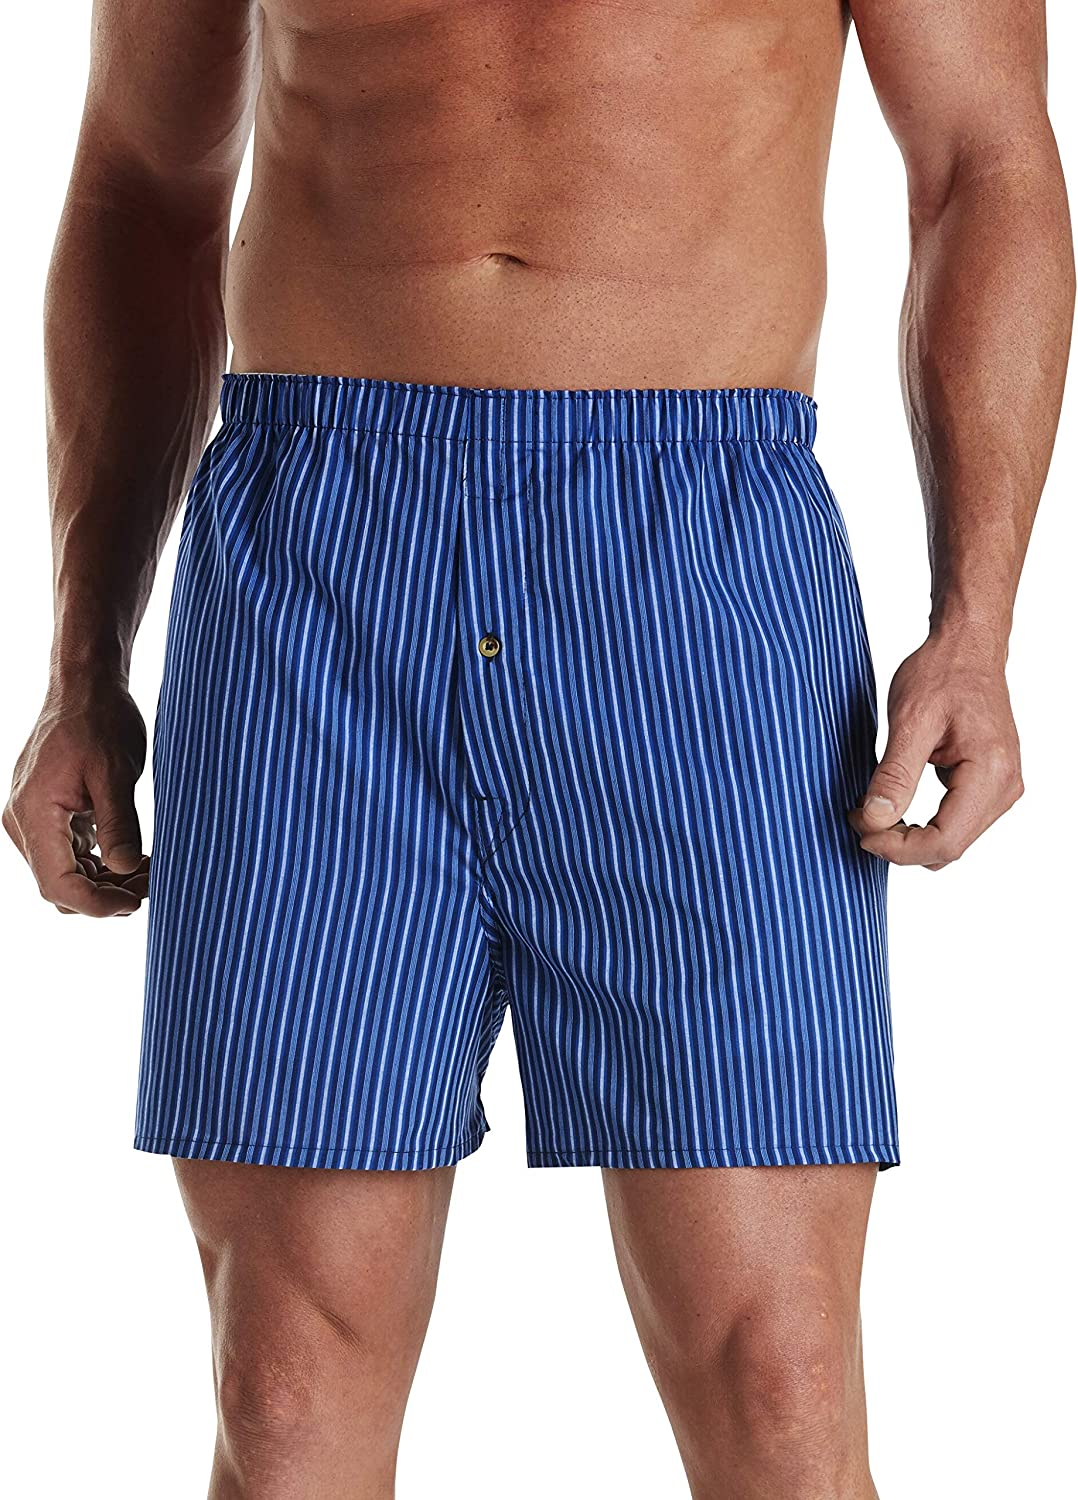 Harbor Bay by DXL Big and Tall 3-Pack Stripe Woven Boxers